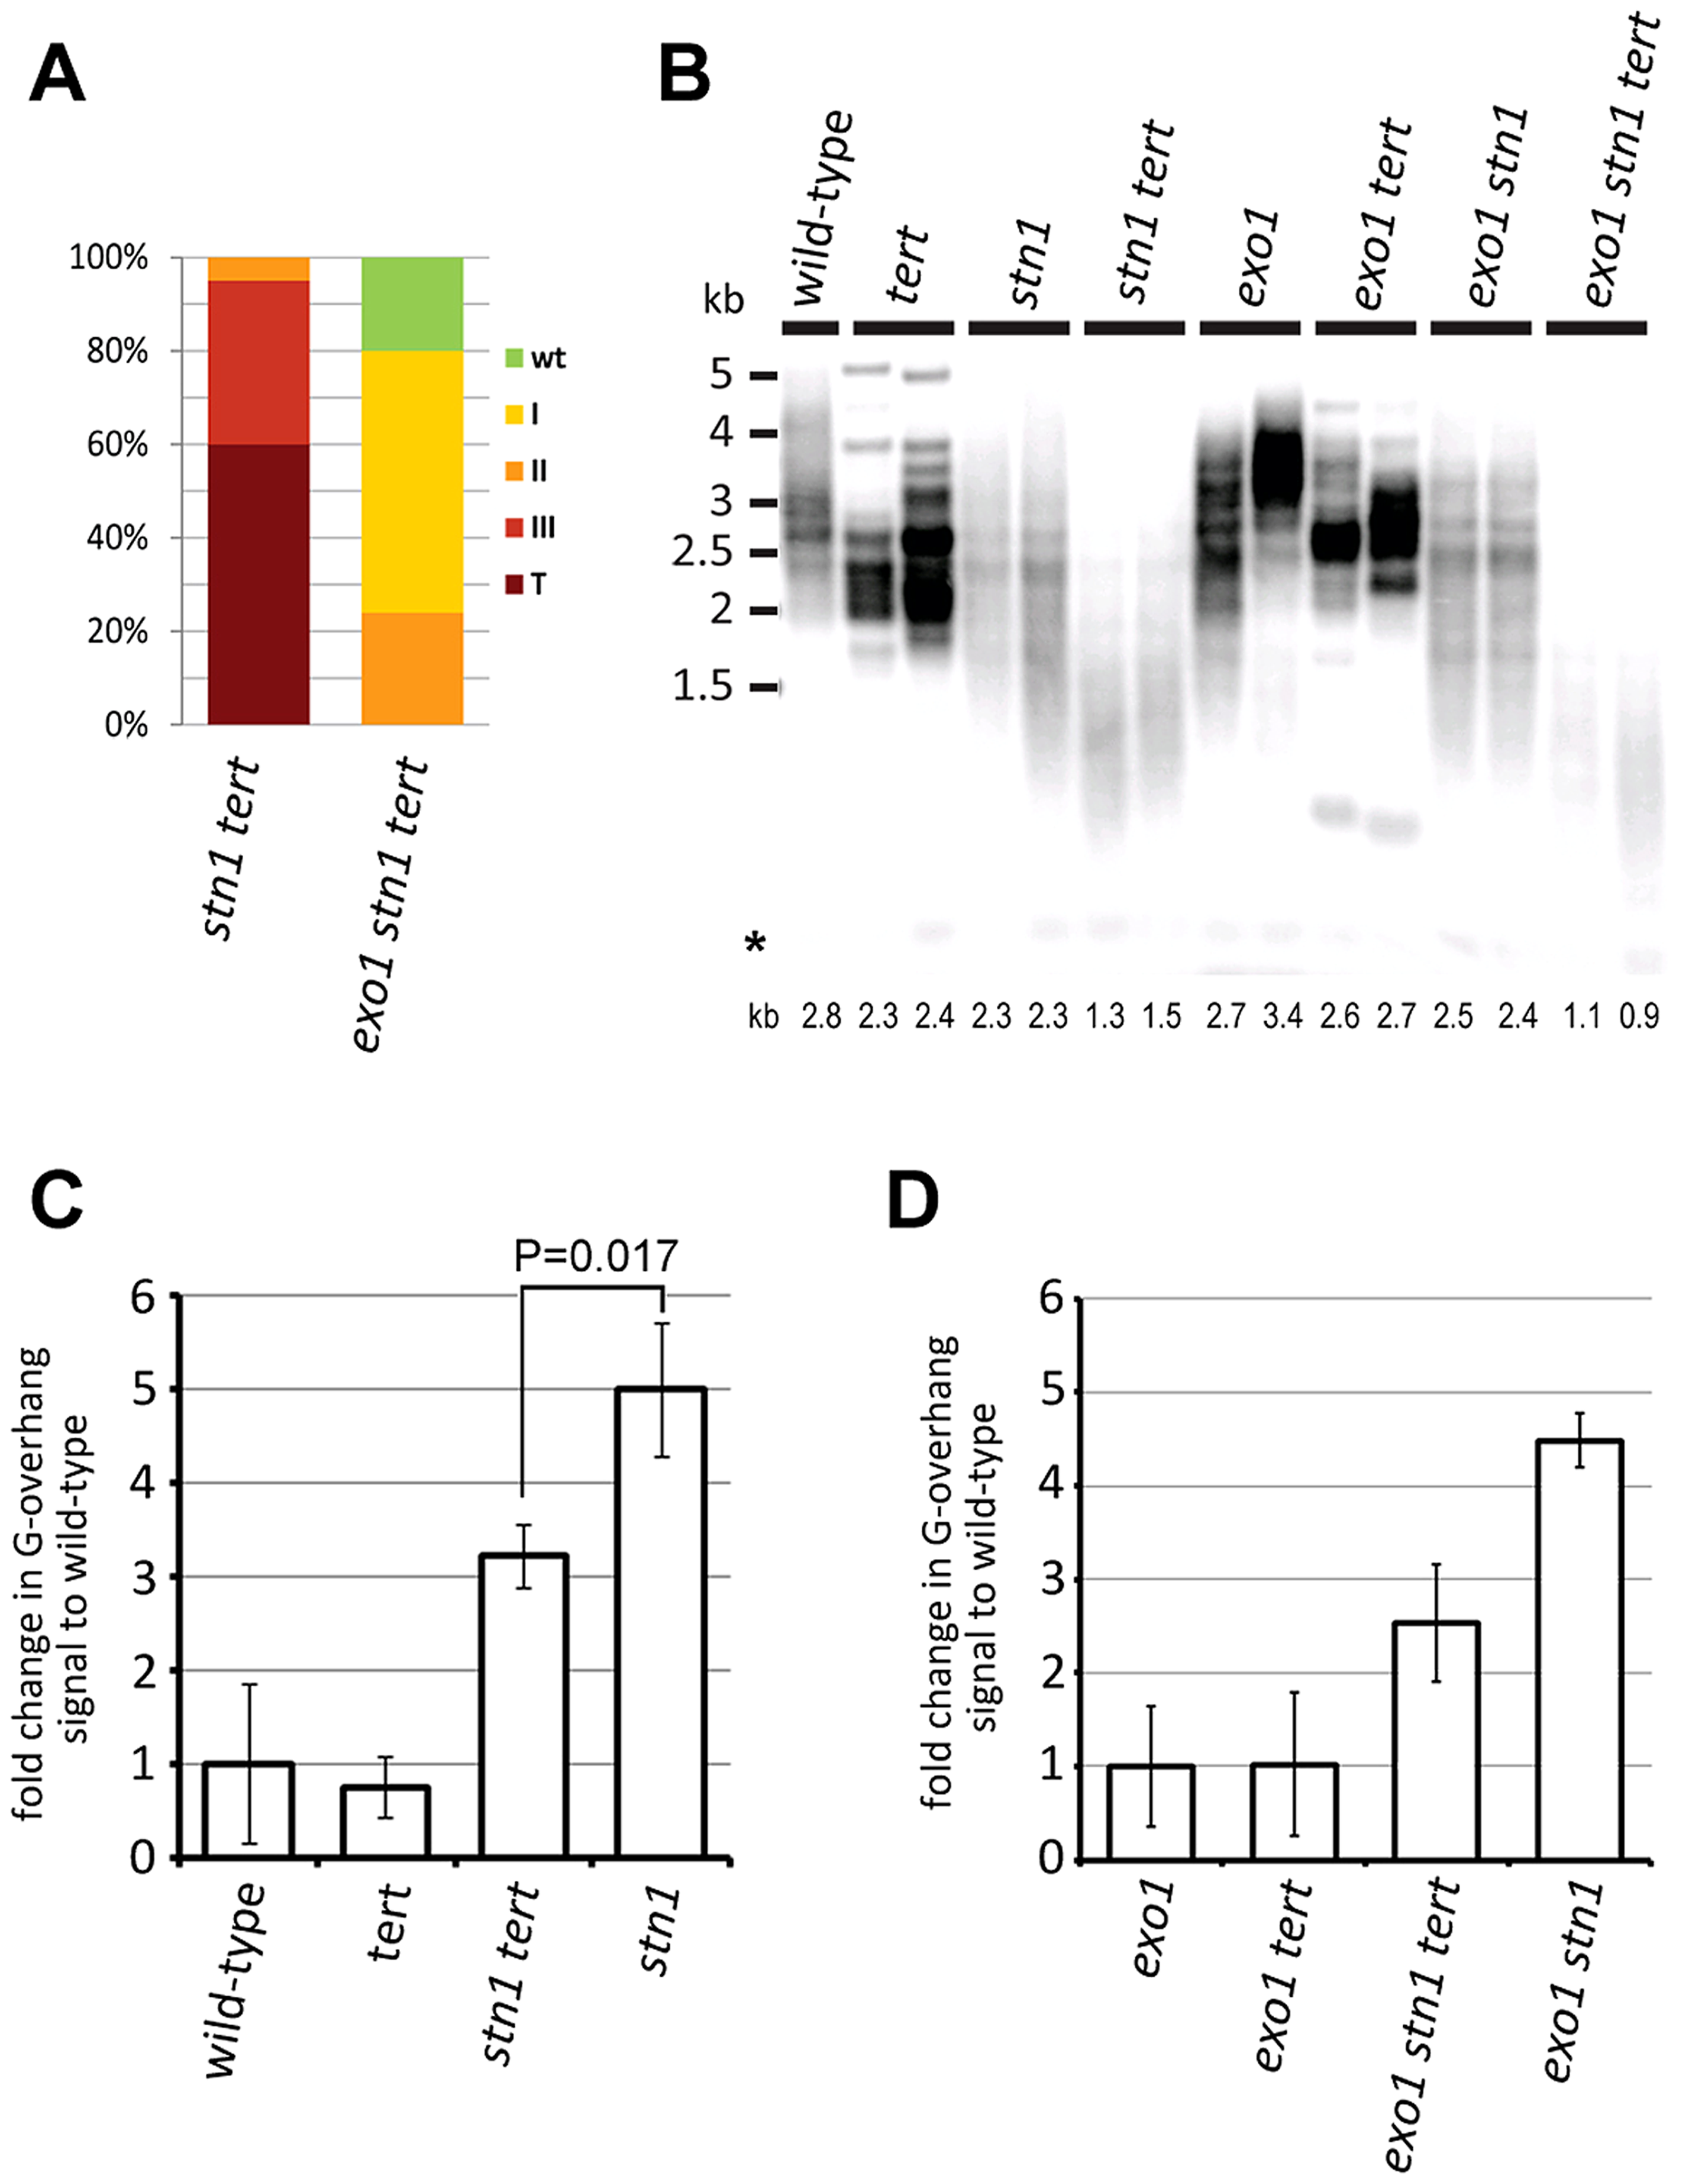 STN1 acts in the C-strand fill-in synthesis after G-strand extension by telomerase.